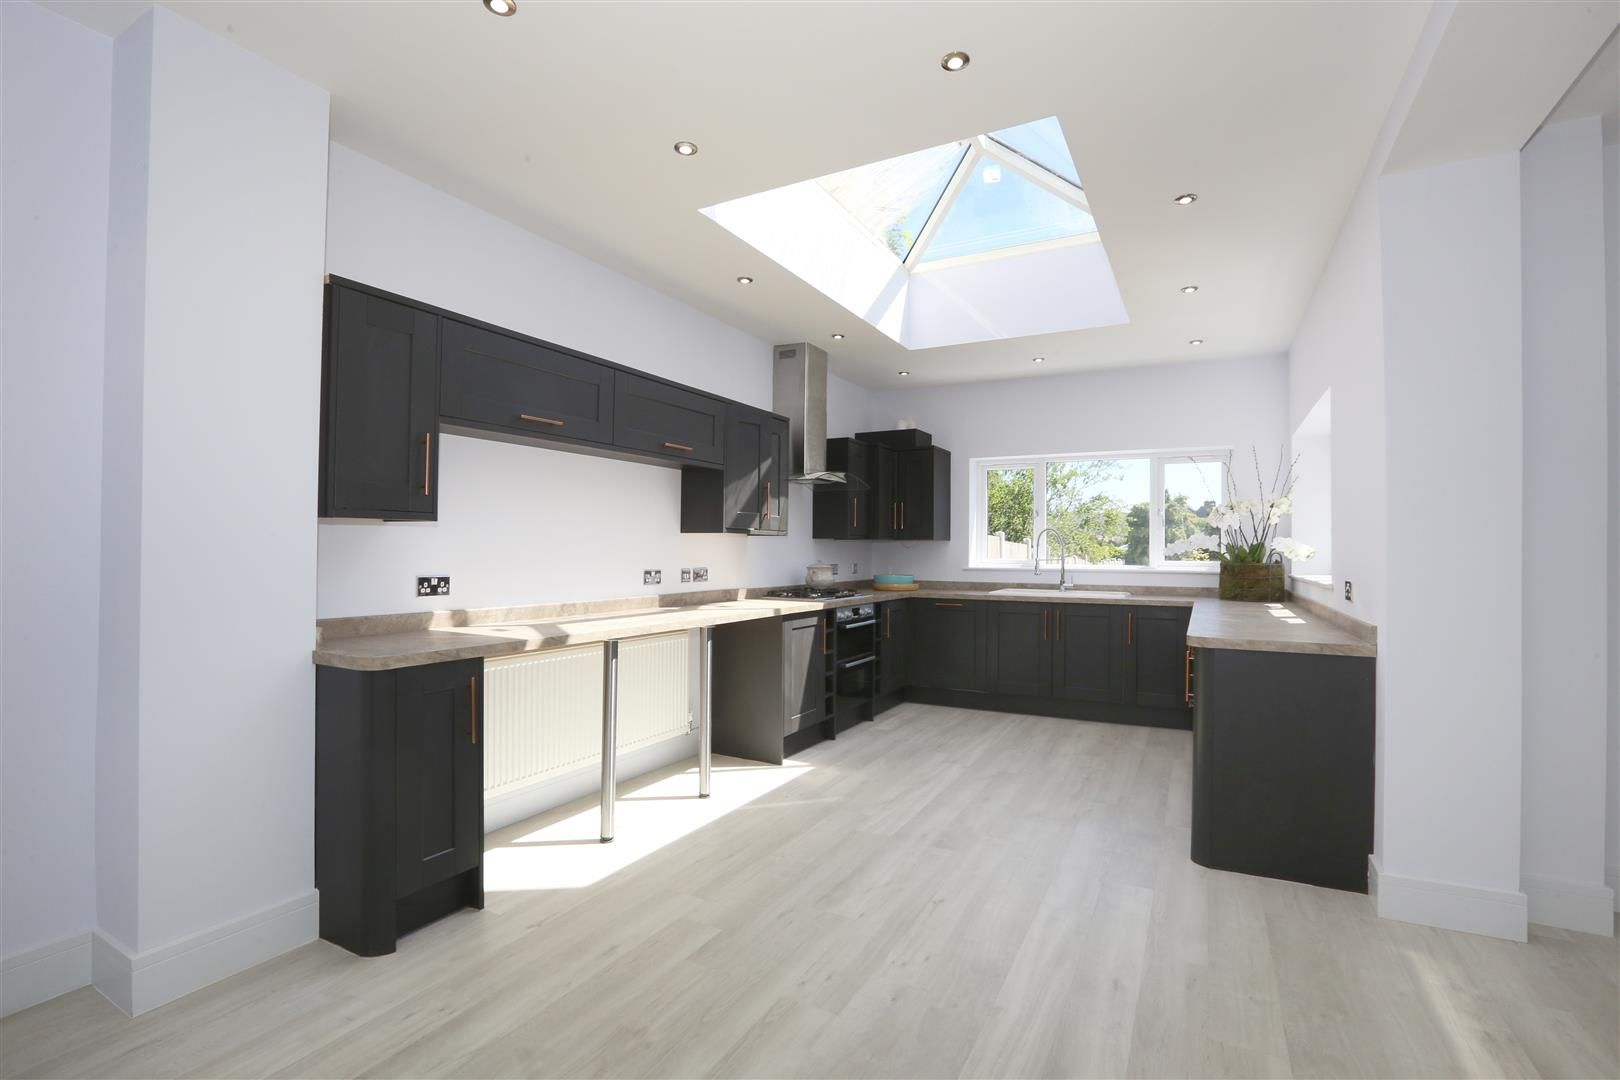 4 bed detached for sale in Hagley 7